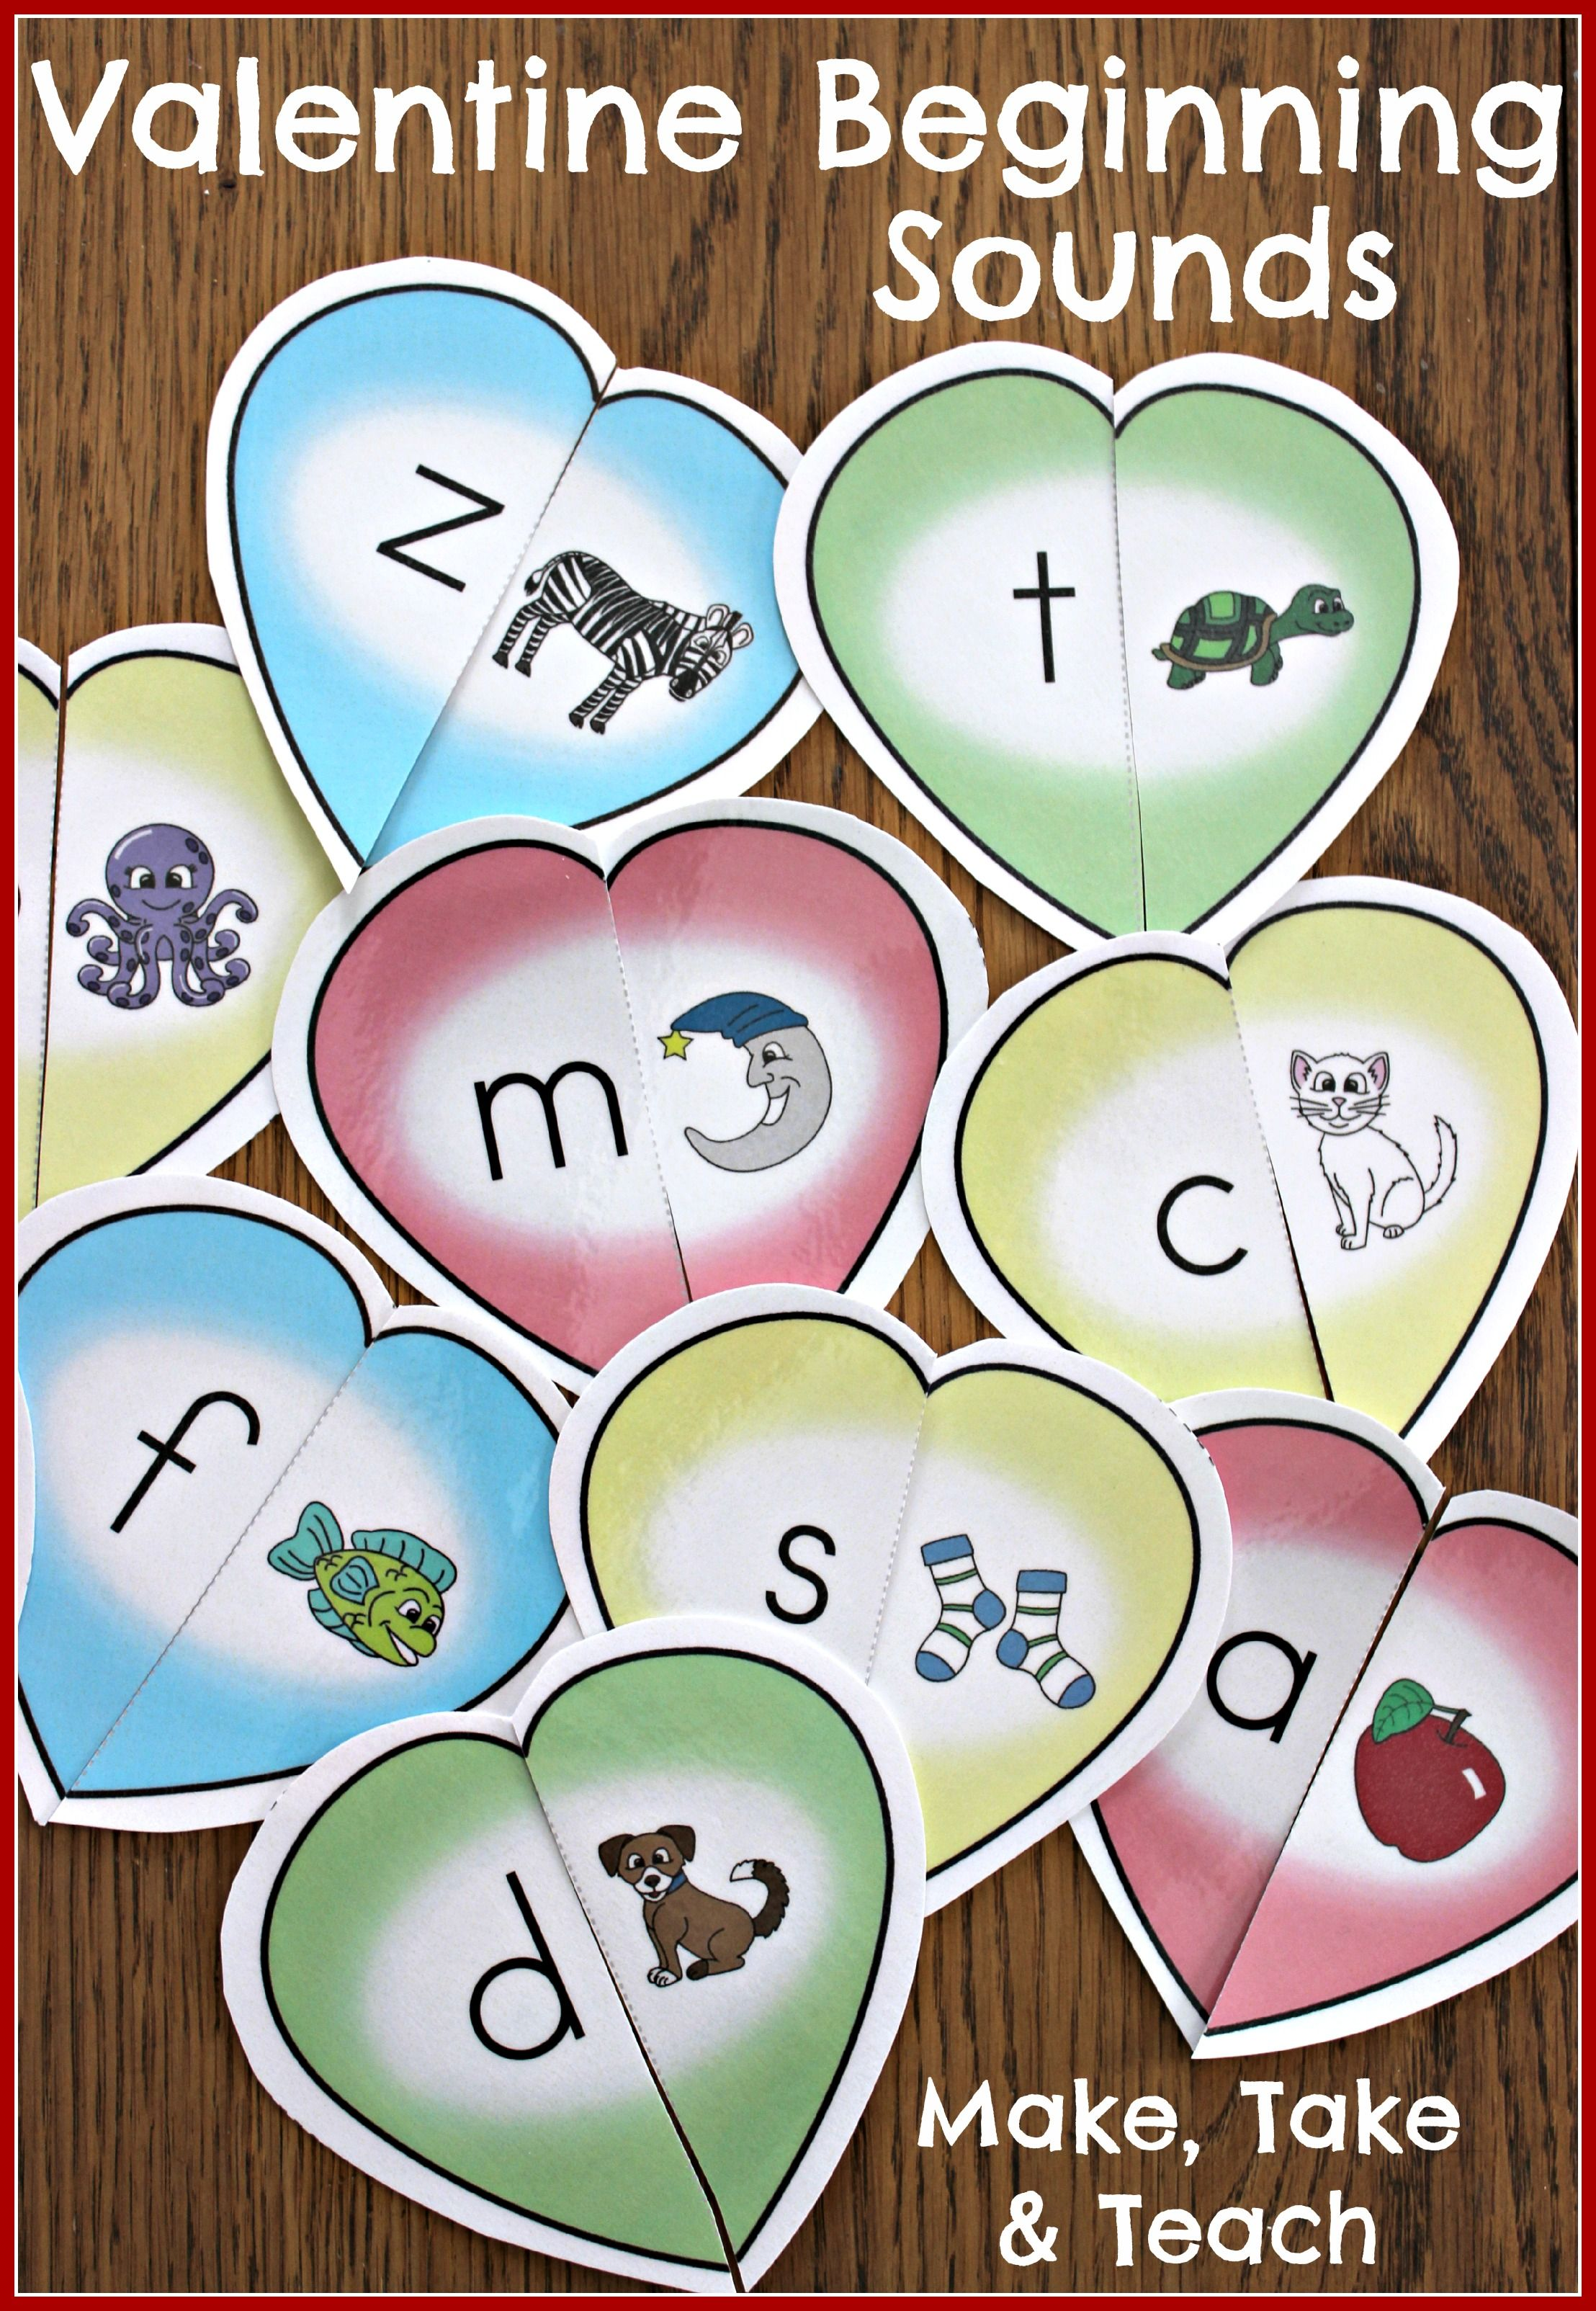 Valentine Hearts for Beginning Sounds. Fun hands-on activity for learning letters and sounds.